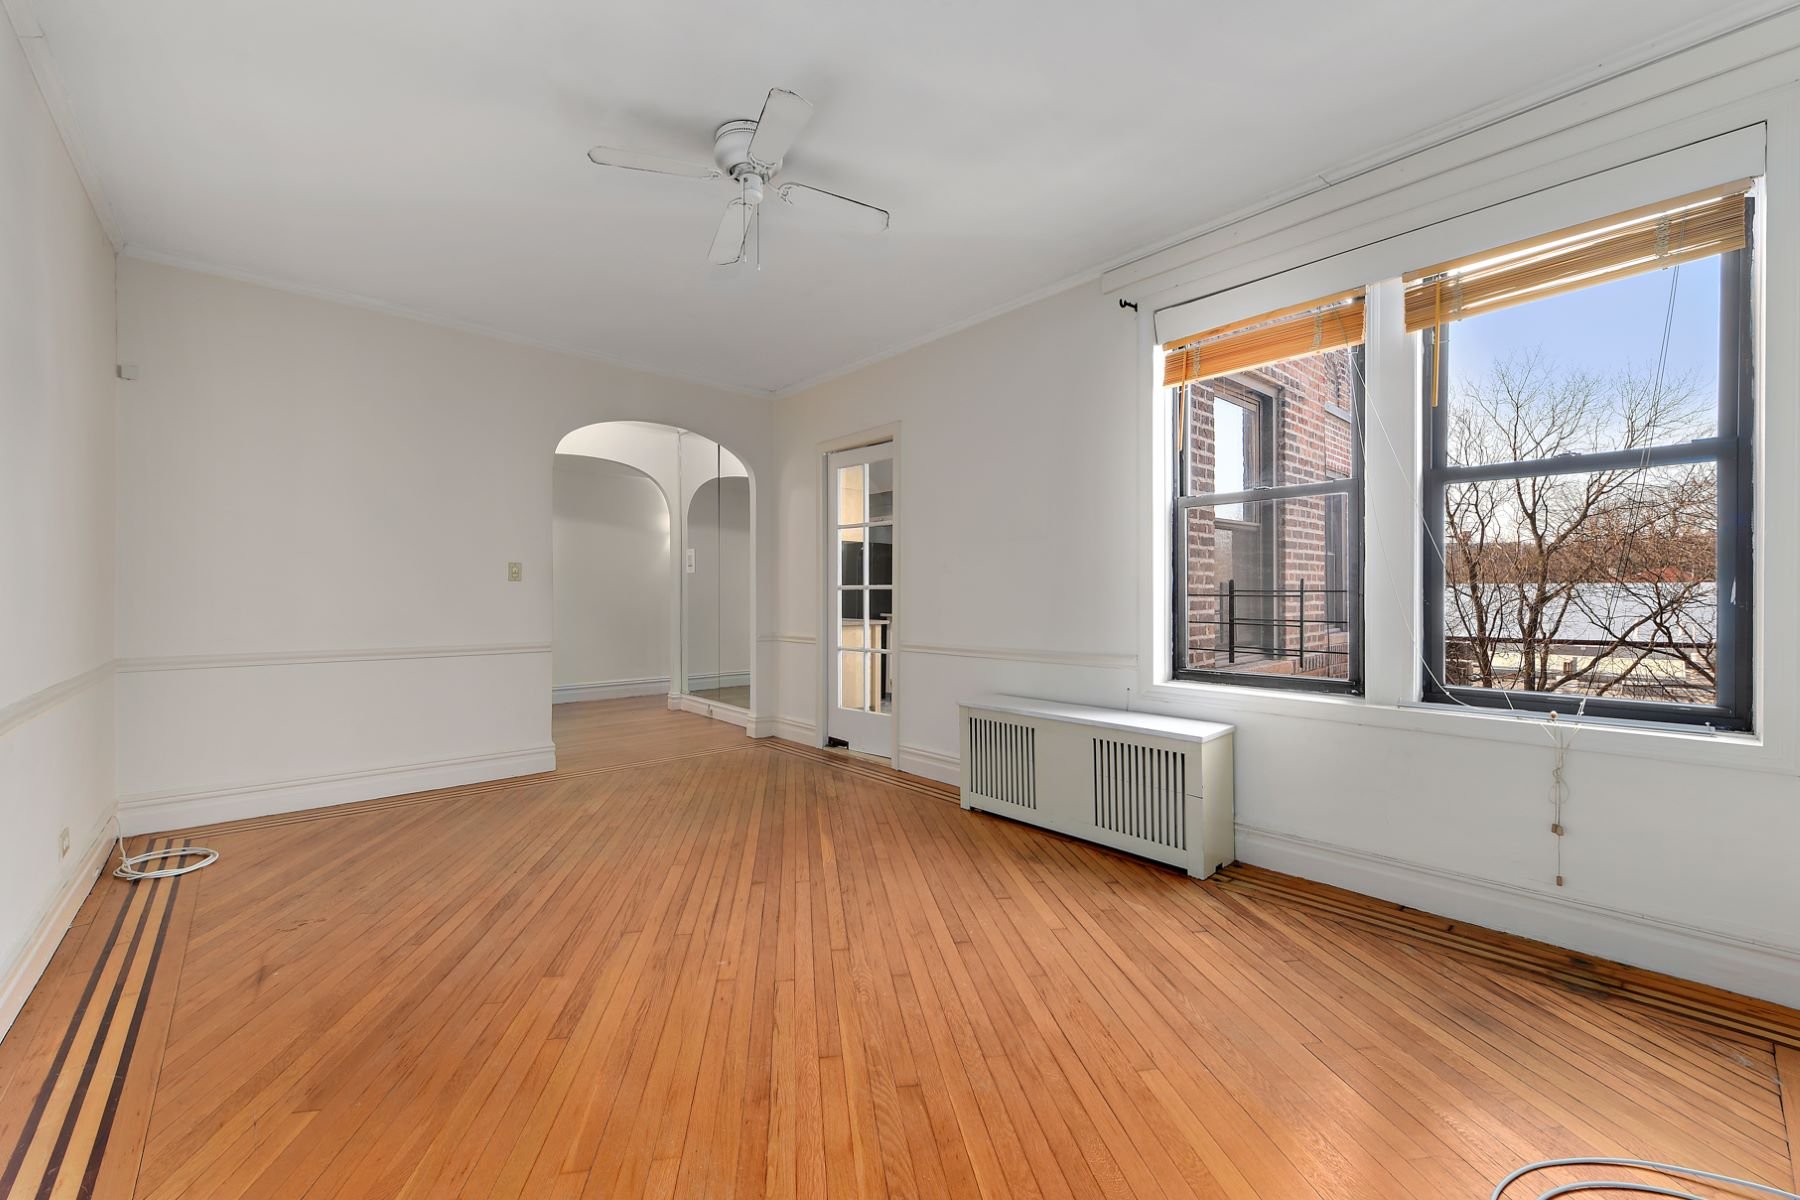 Co-op for Sale at Large Prewar One Bedroom 4410 Cayuga Avenue 6G, Riverdale, New York, 10471 United States